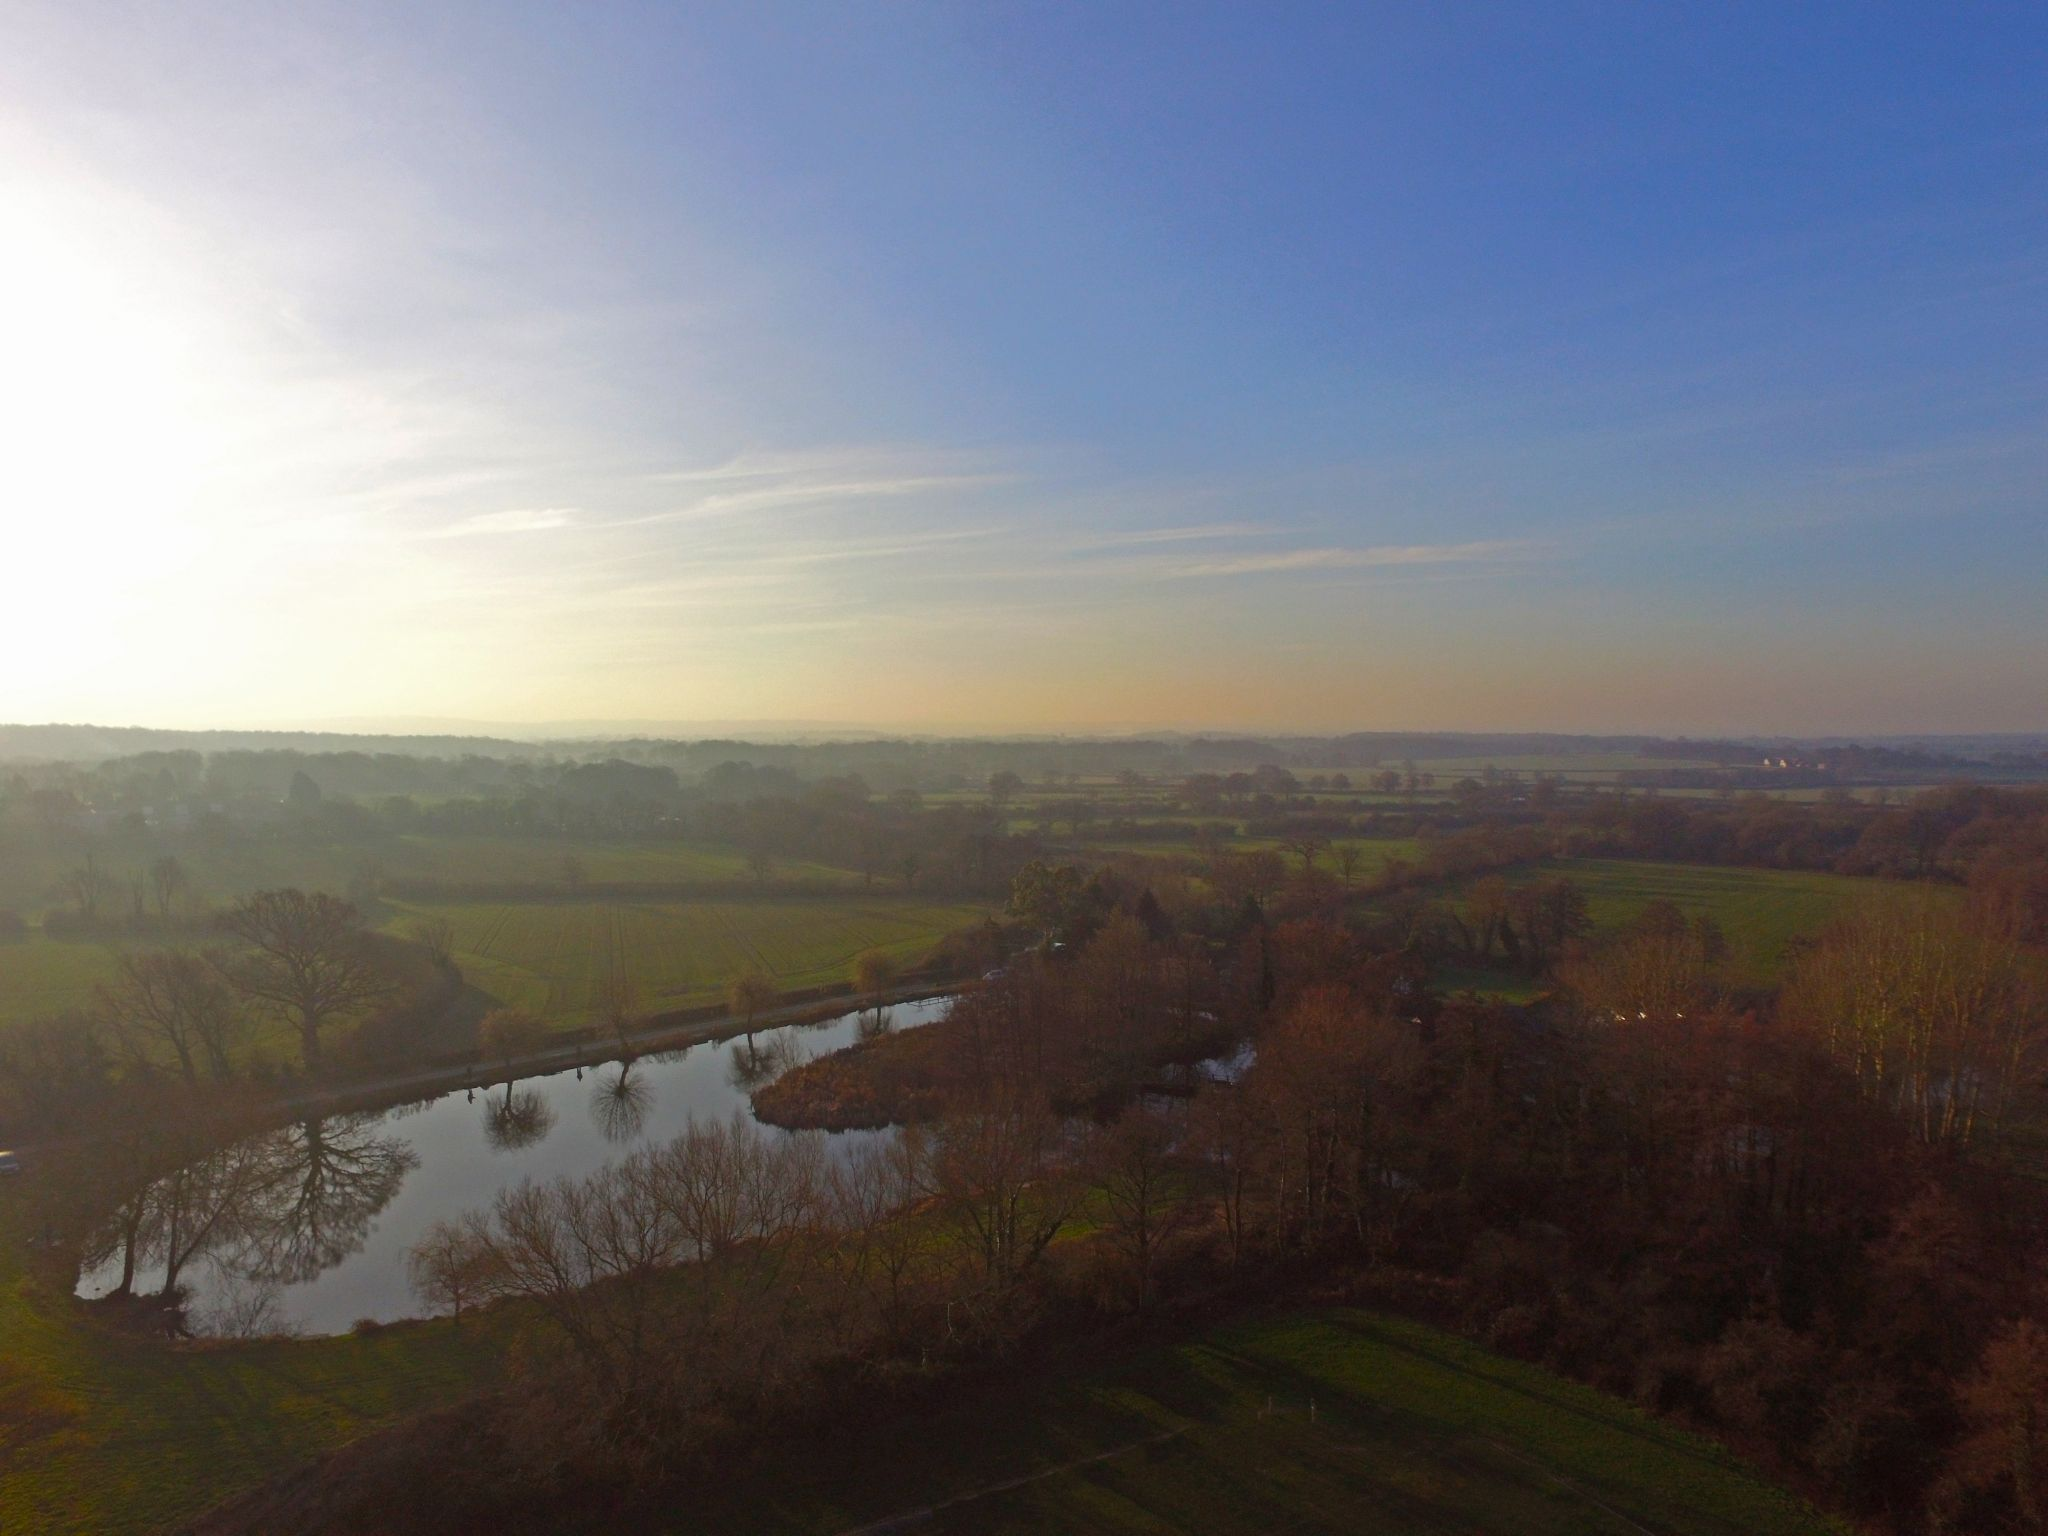 Sussex and Kent landscape by drone